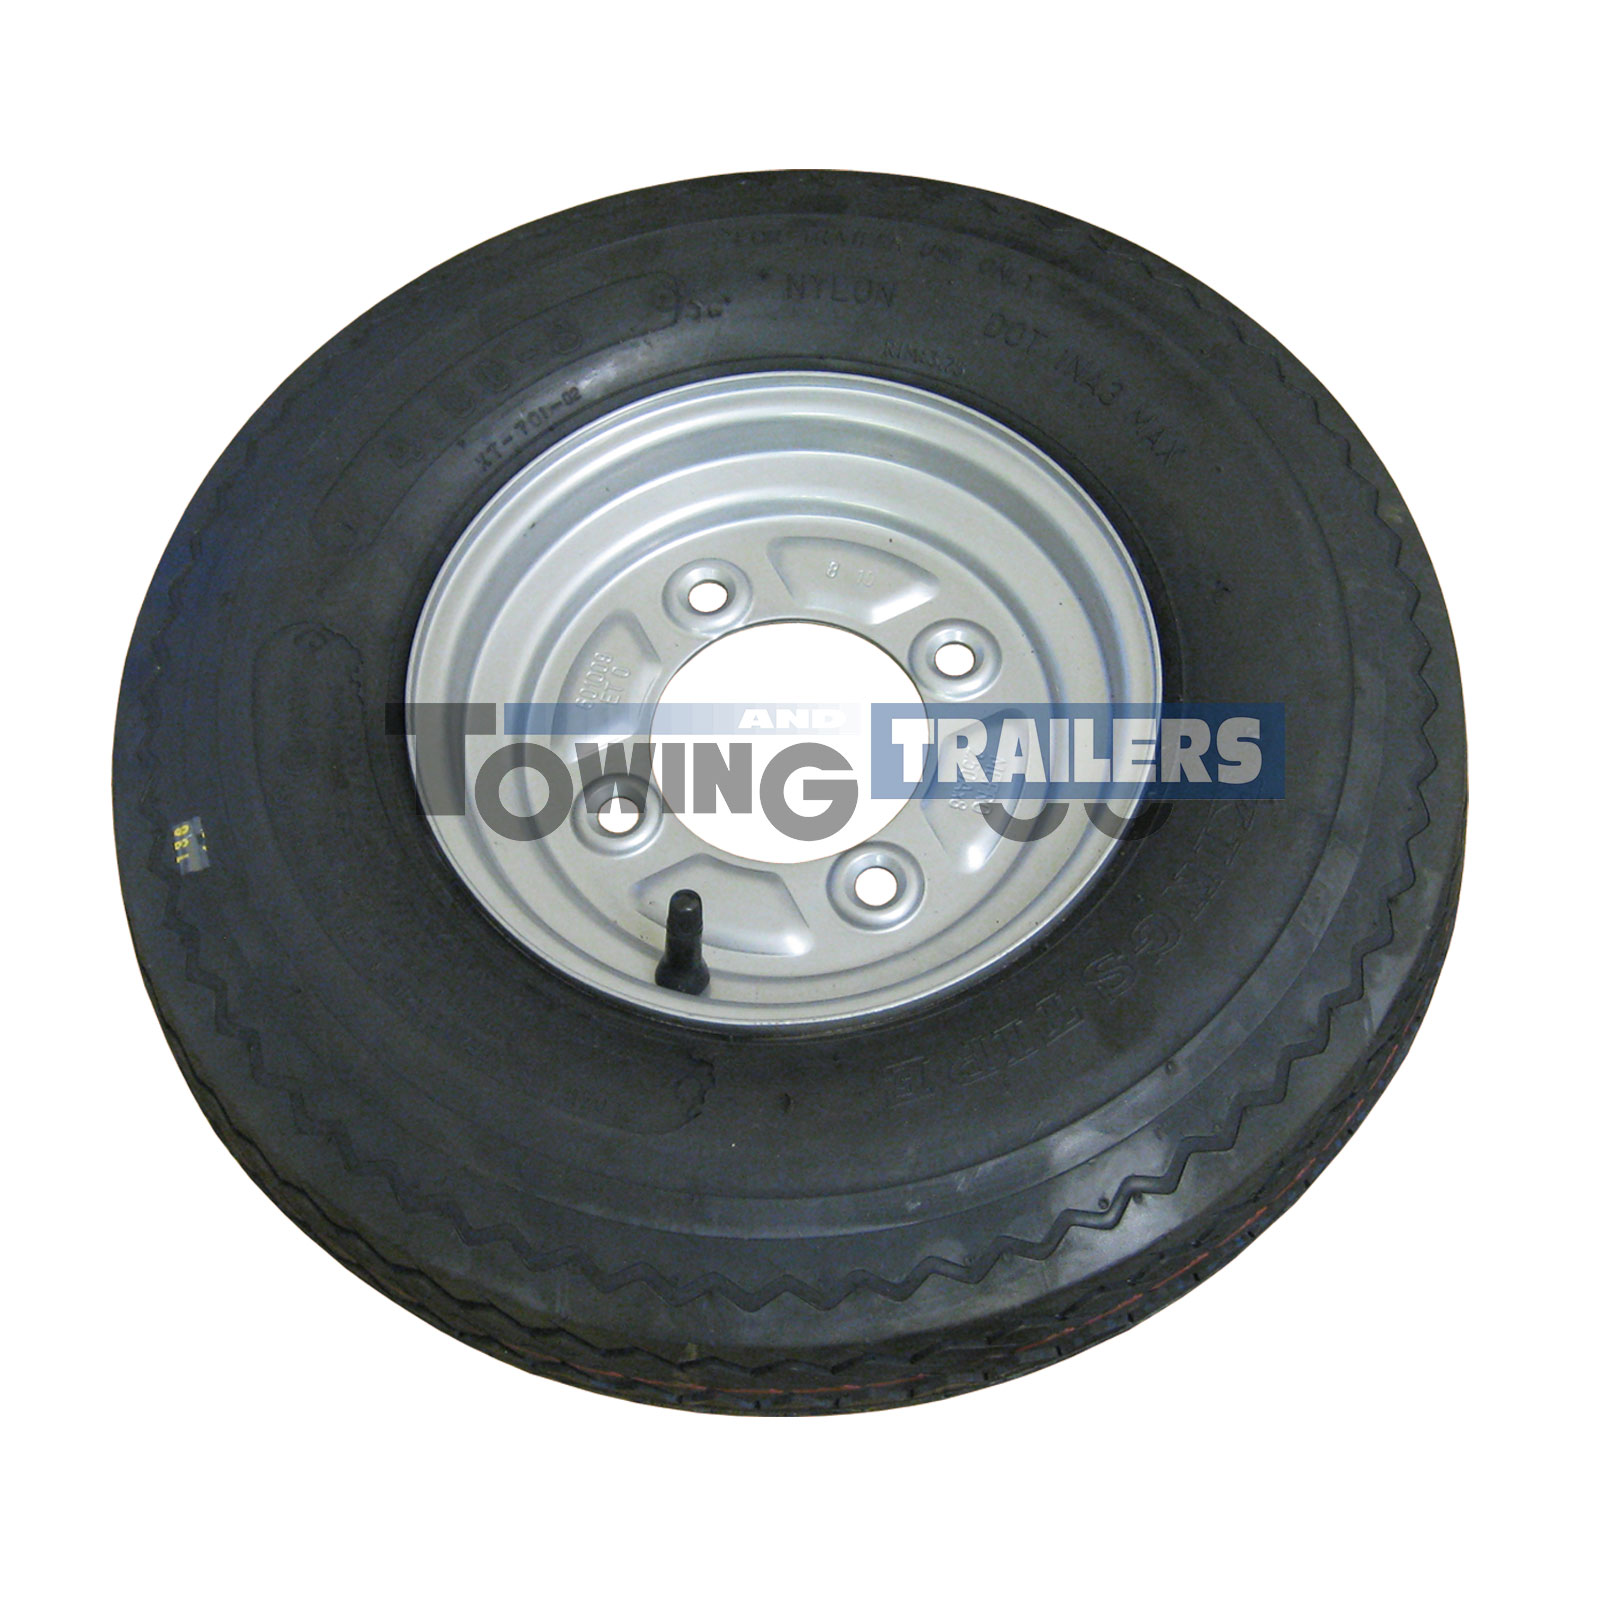 Erde 122 spare parts towing and trailers ltd 4008 4 ply 62m trailer tyre on 4 stud x 115mm pcd et0 wheel rim cheapraybanclubmaster Images